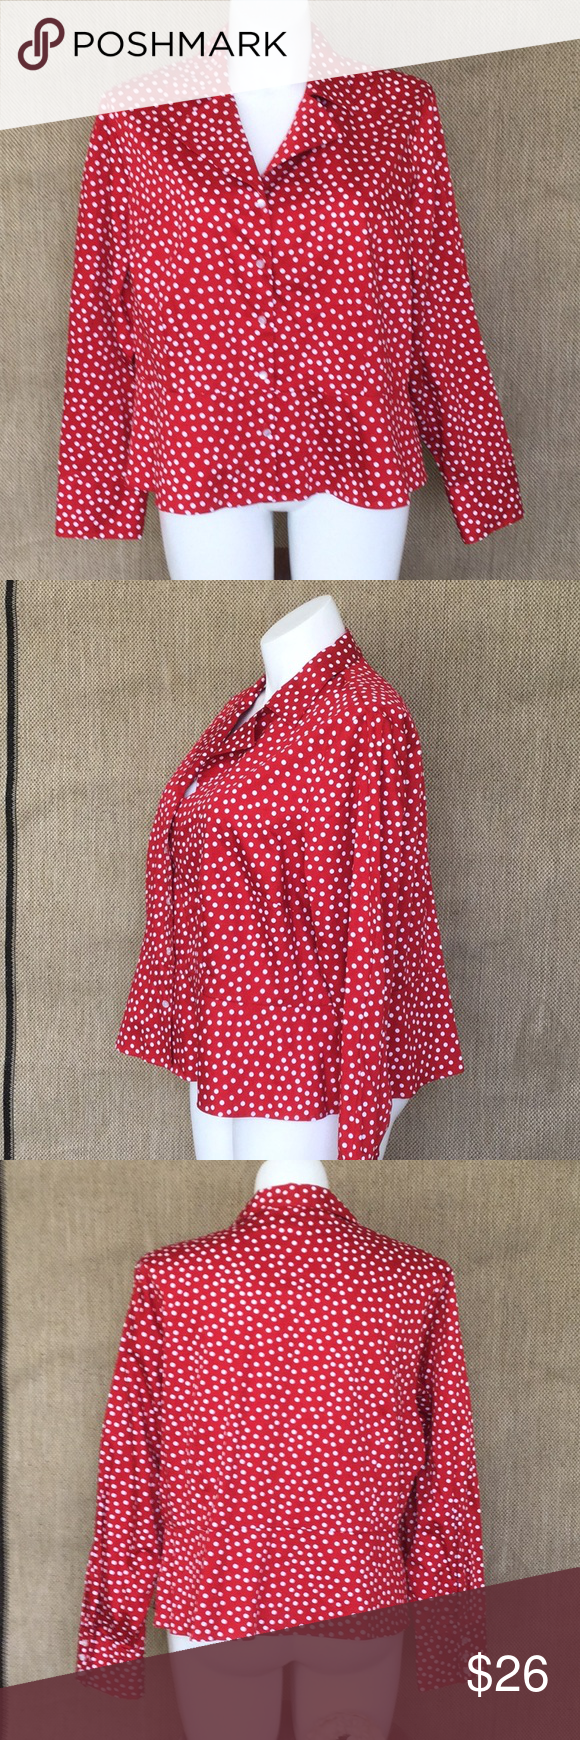 ed83ca3a6fa95 Rockabilly Red polka dot peplum blouse VLV Minnie 100% cotton blouse in our  favorite Minnie